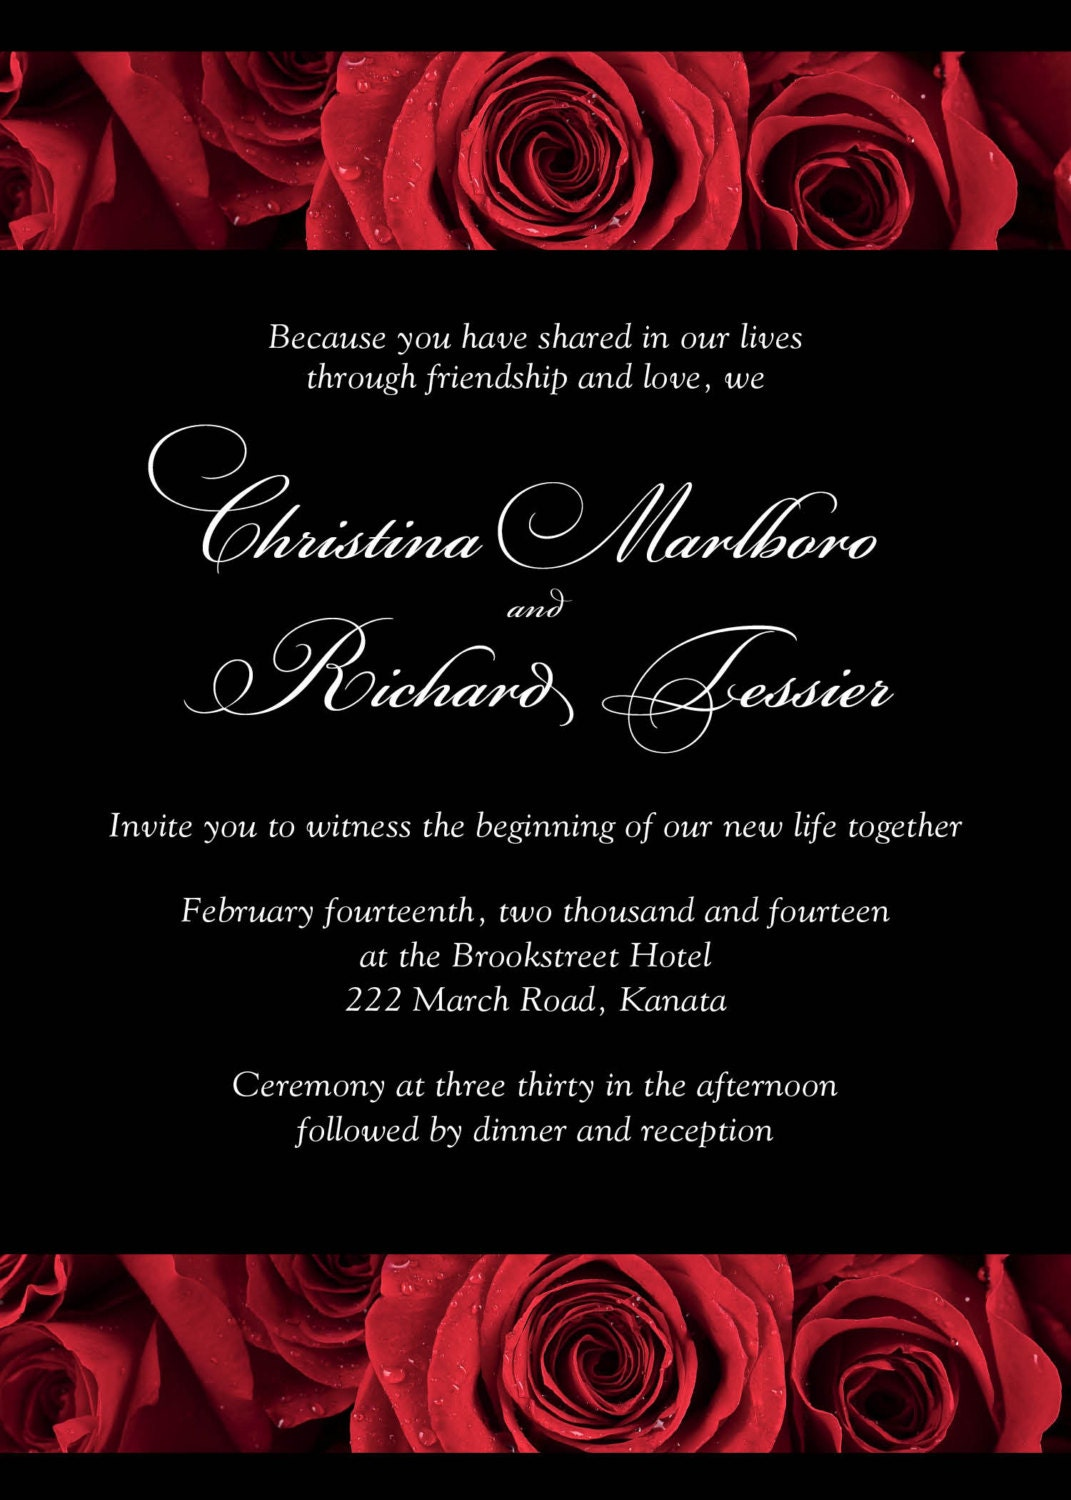 Red Rose Invitations For Your Wedding Deep Crimson With